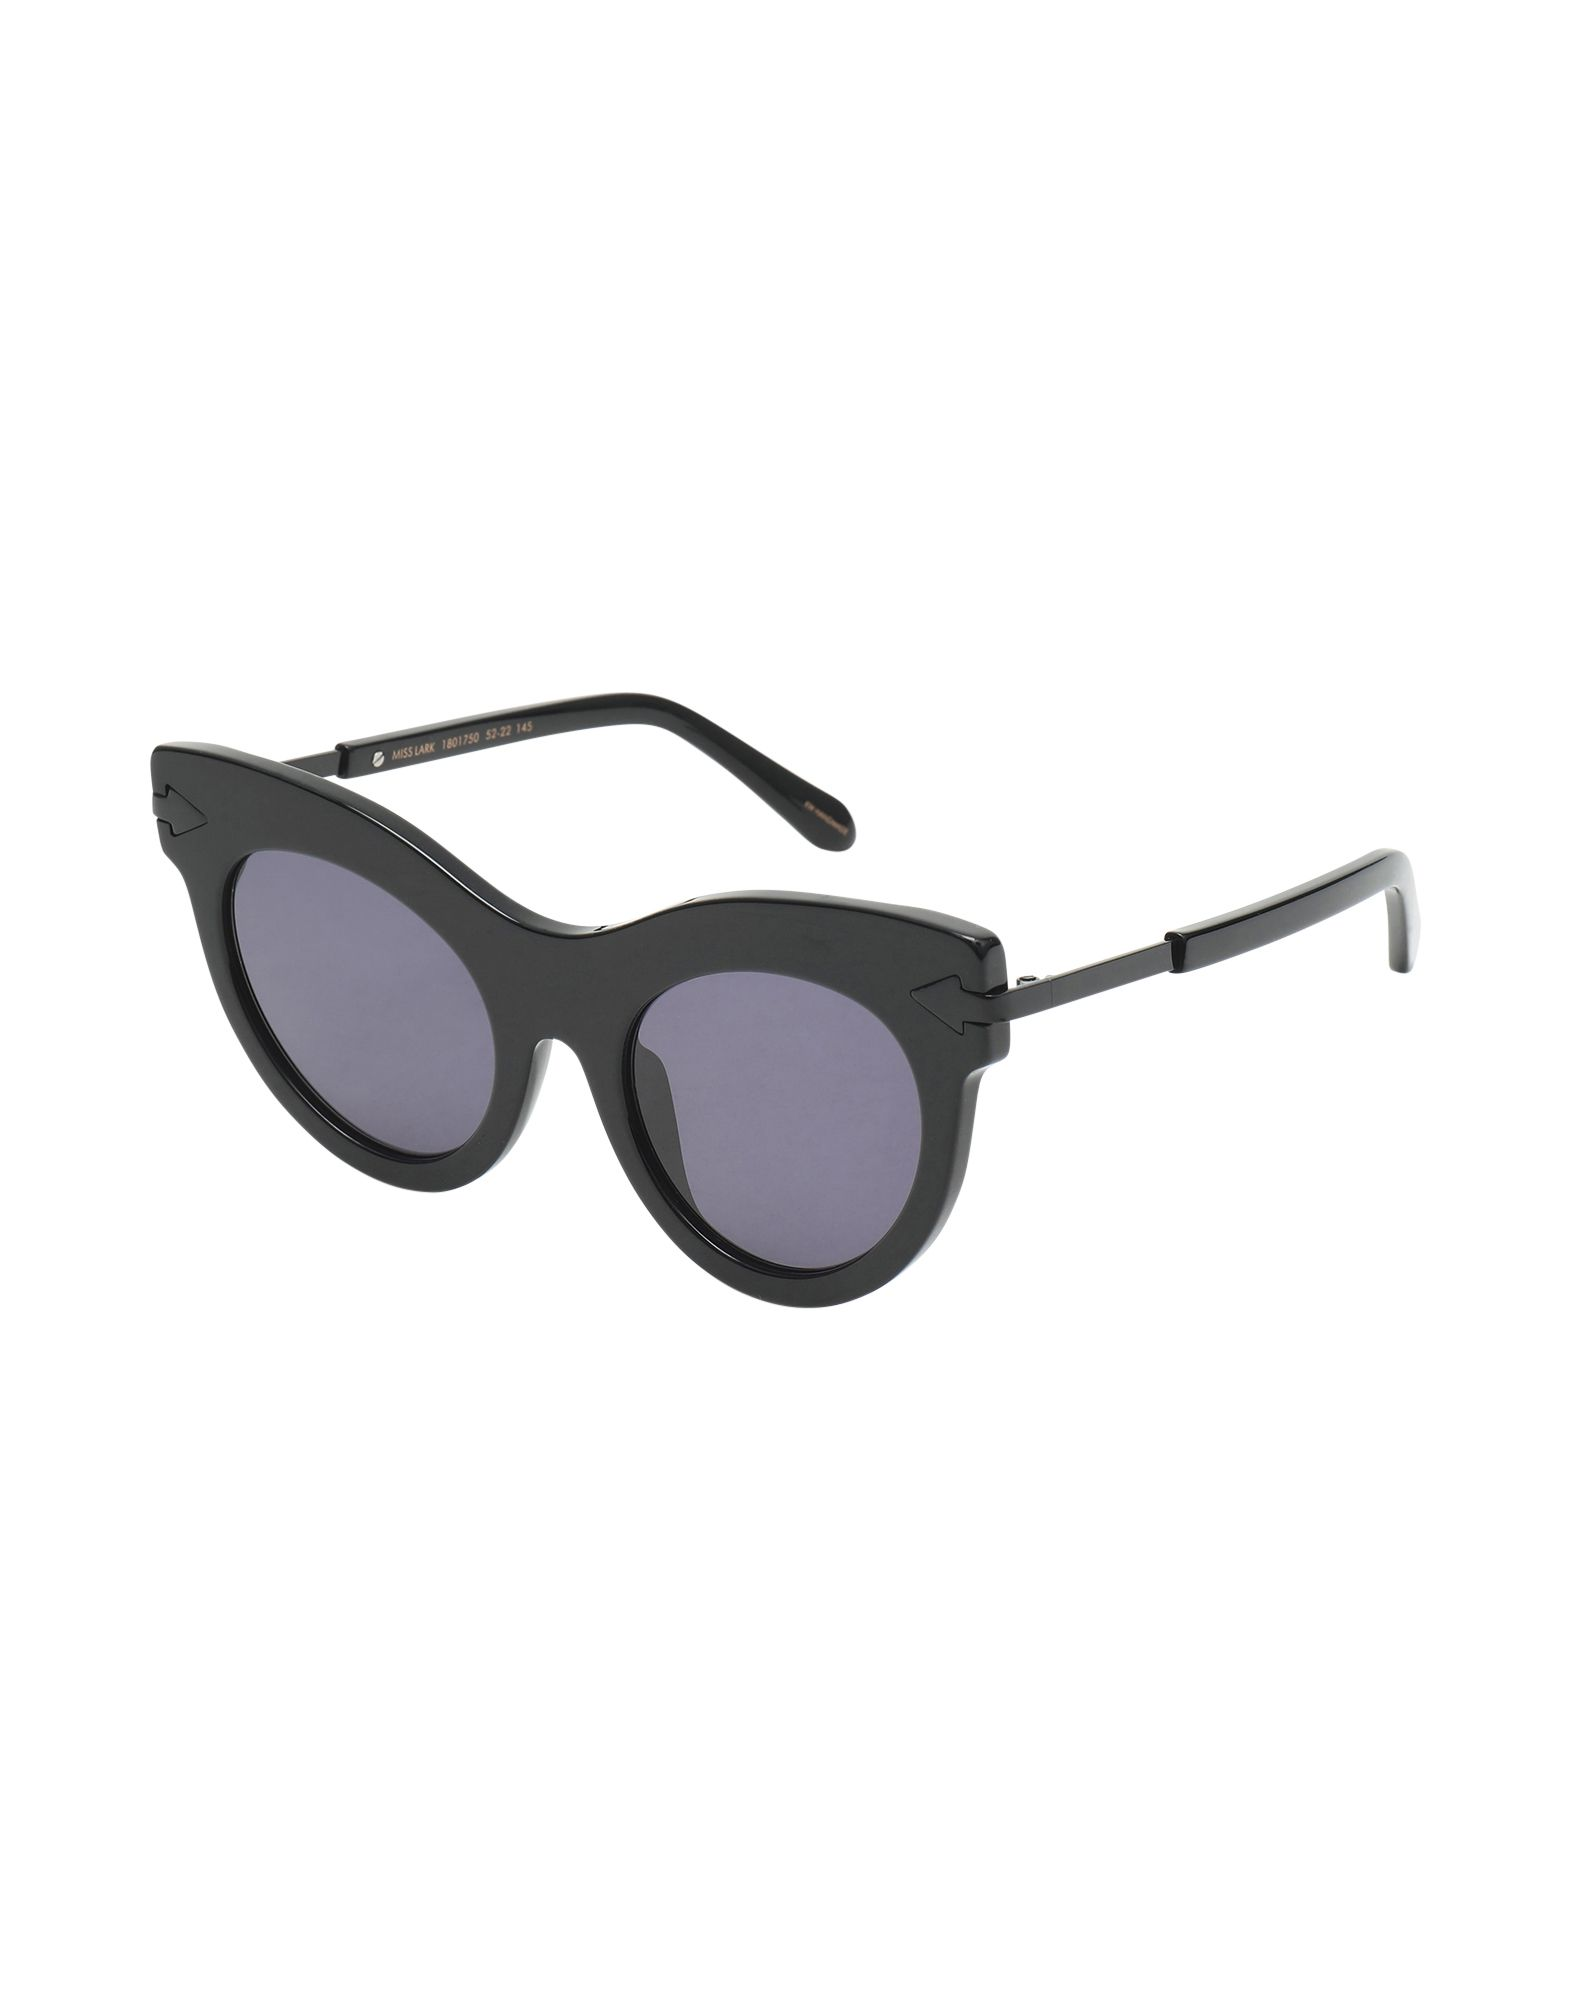 KAREN WALKER Sunglasses - Item 46651519